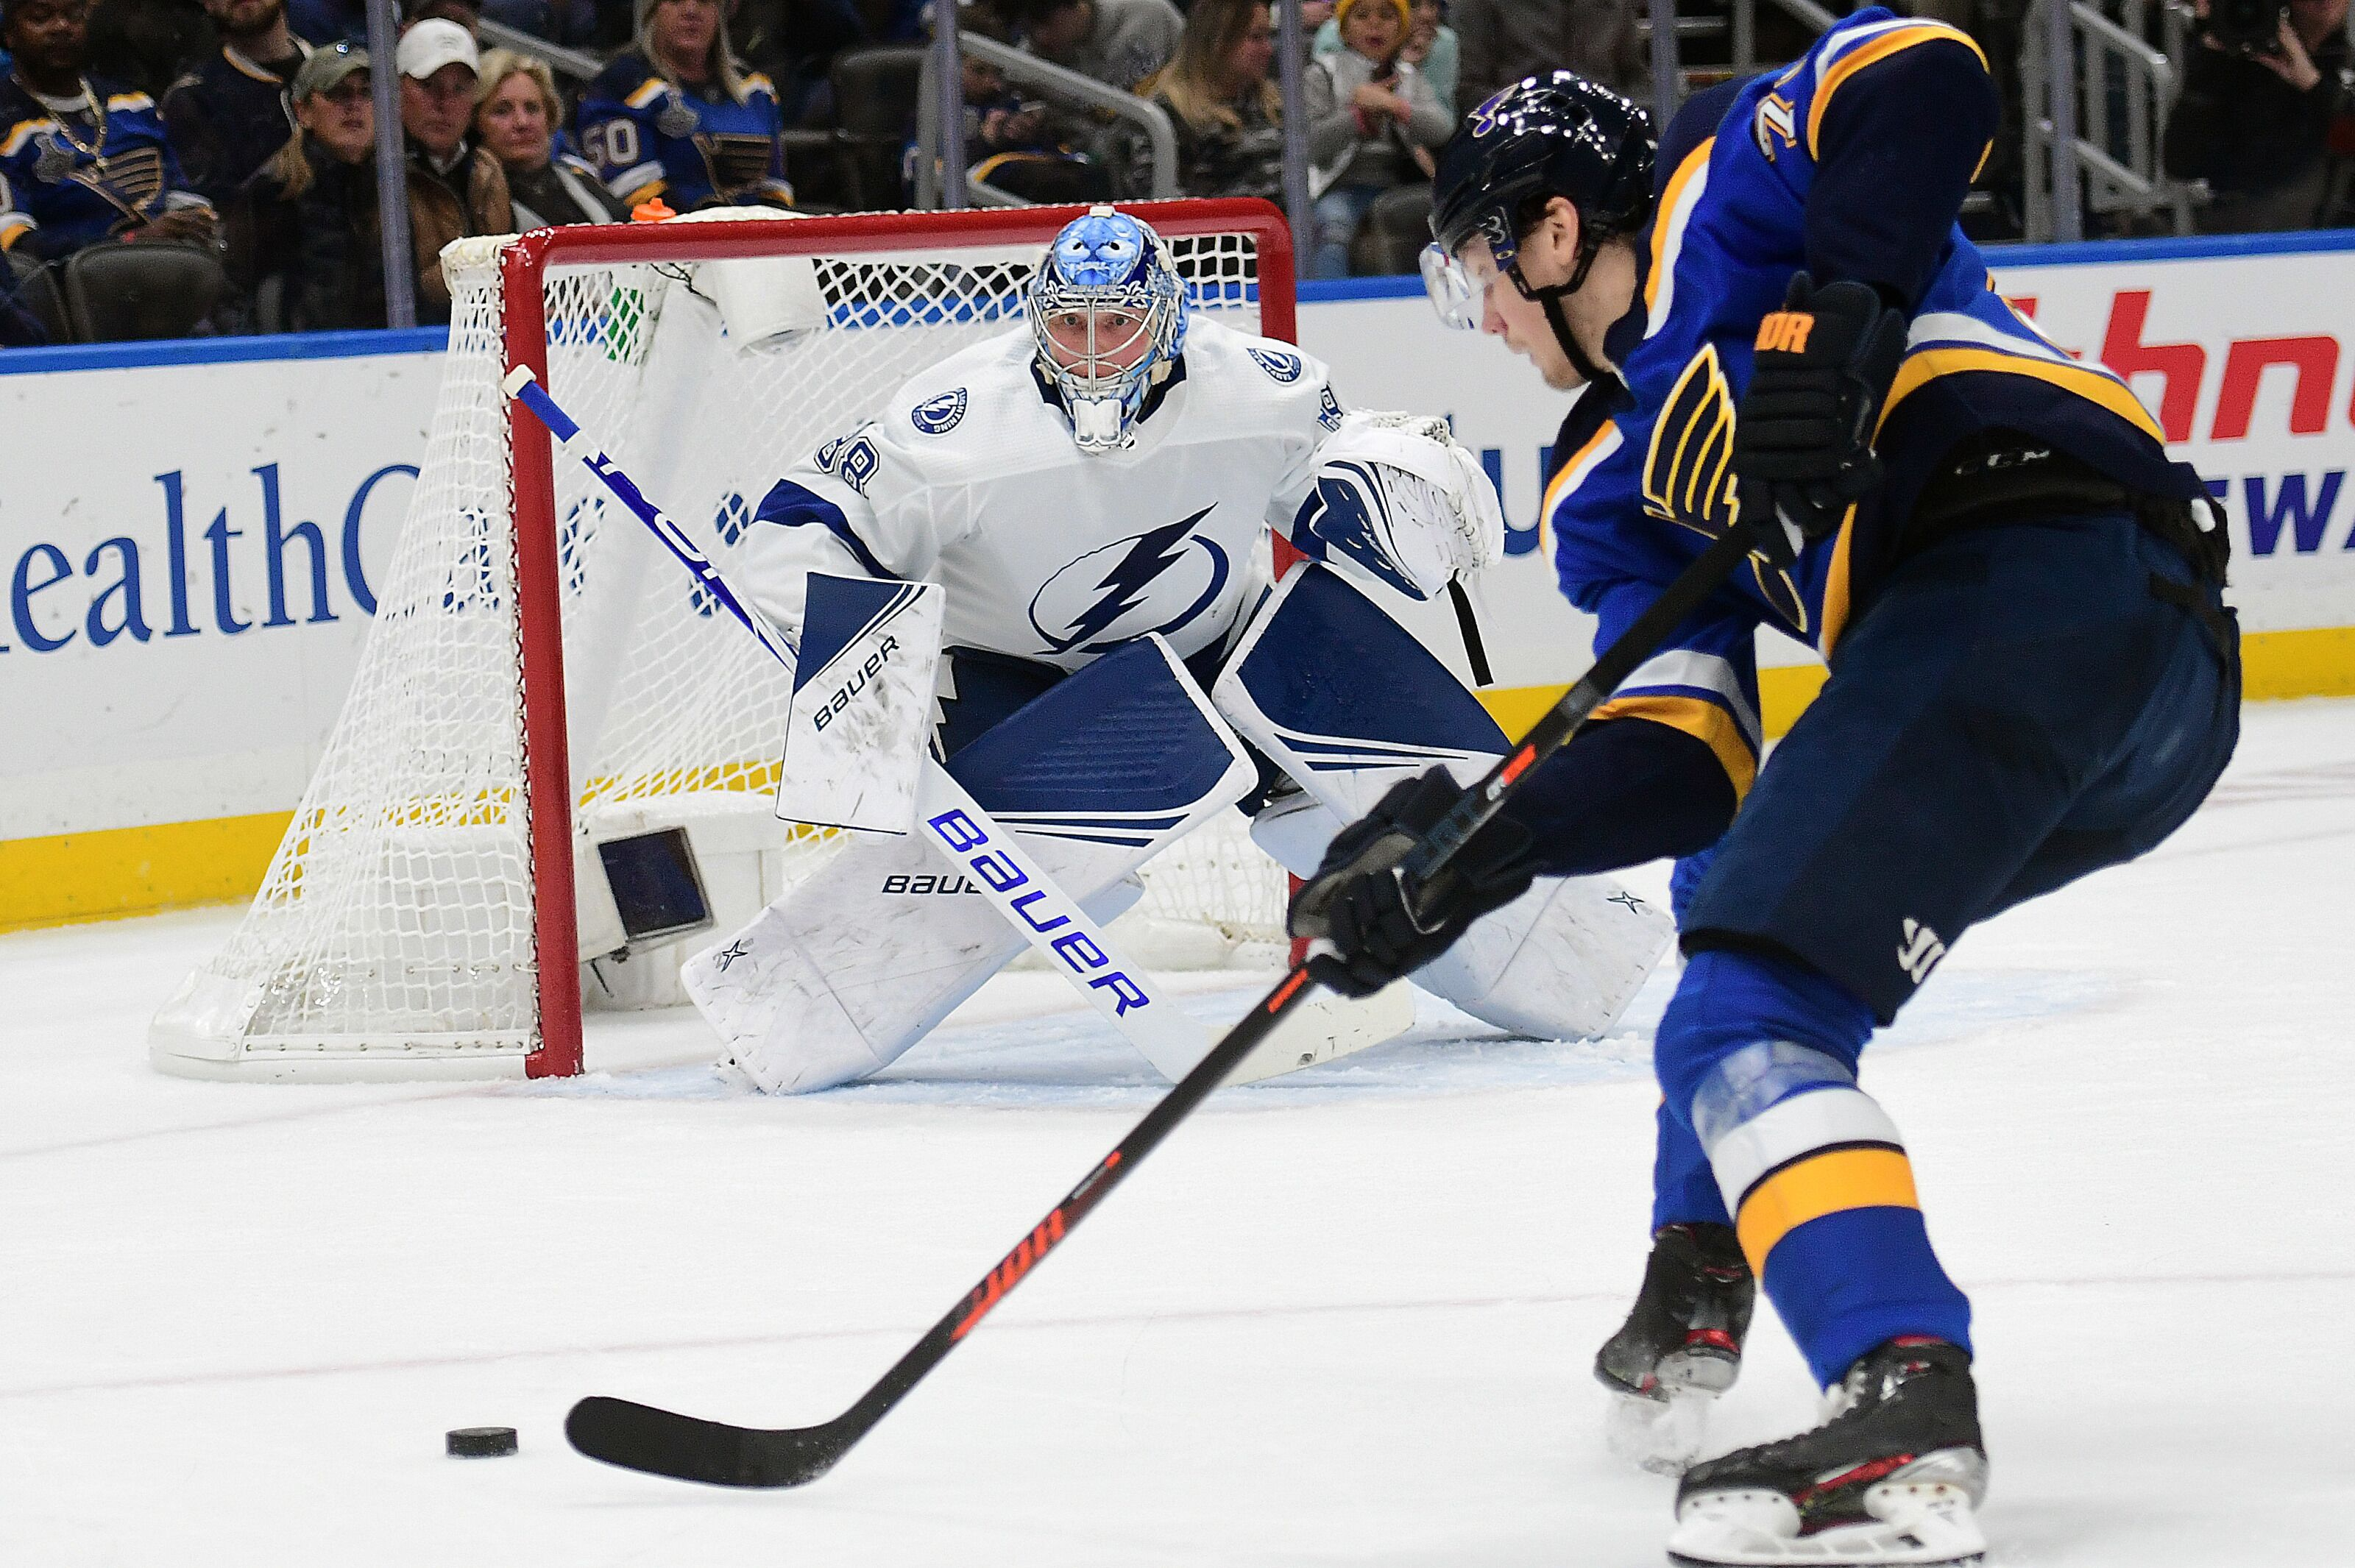 Tampa Bay Lightning fall to St. Louis Blues in a spirited contest